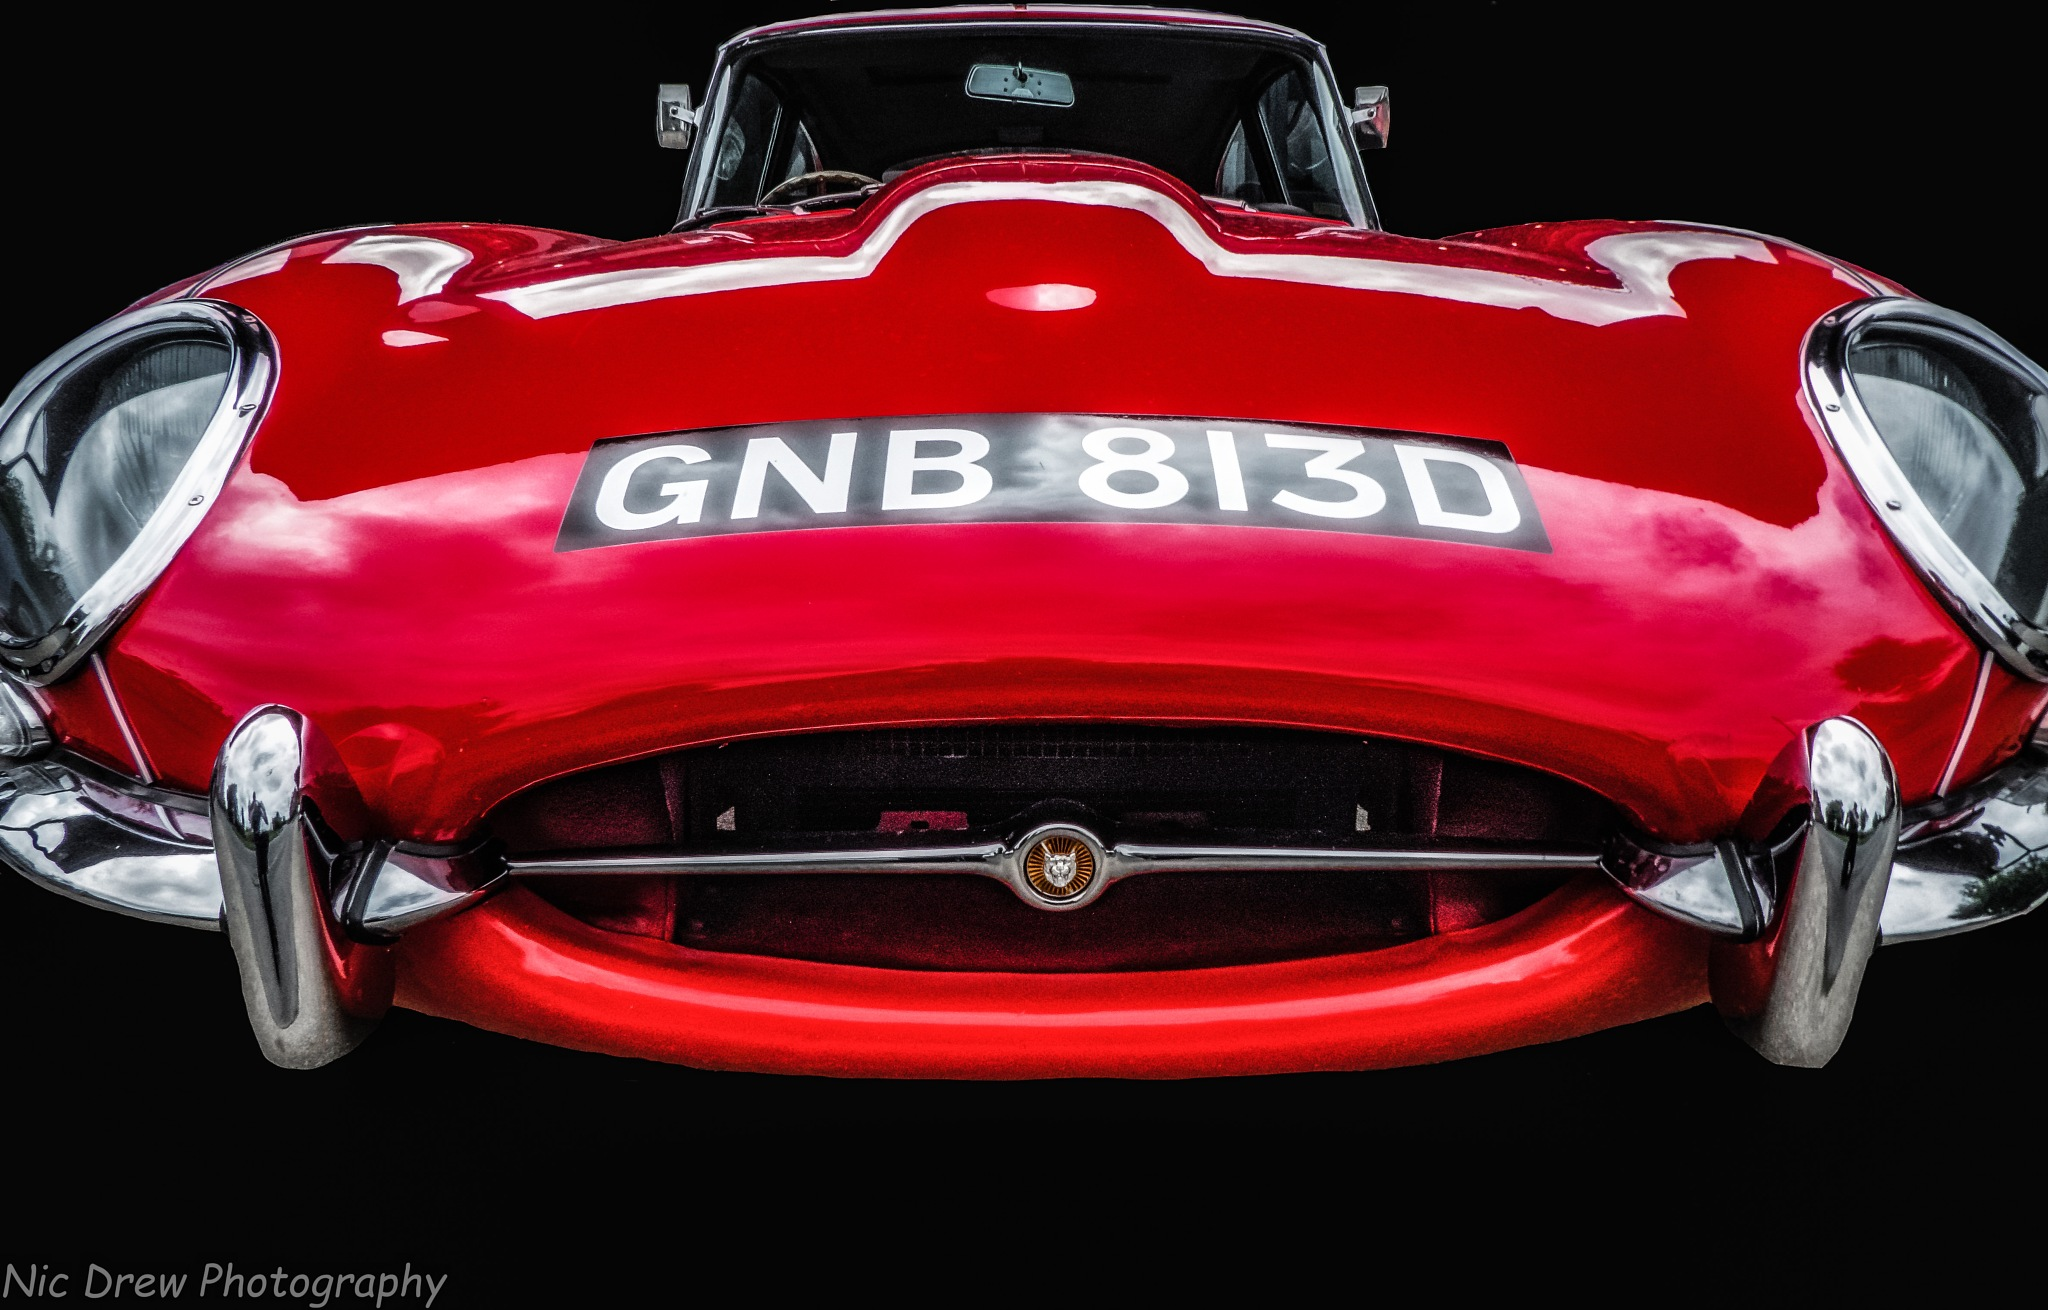 E-Type Jag by Nic Drew